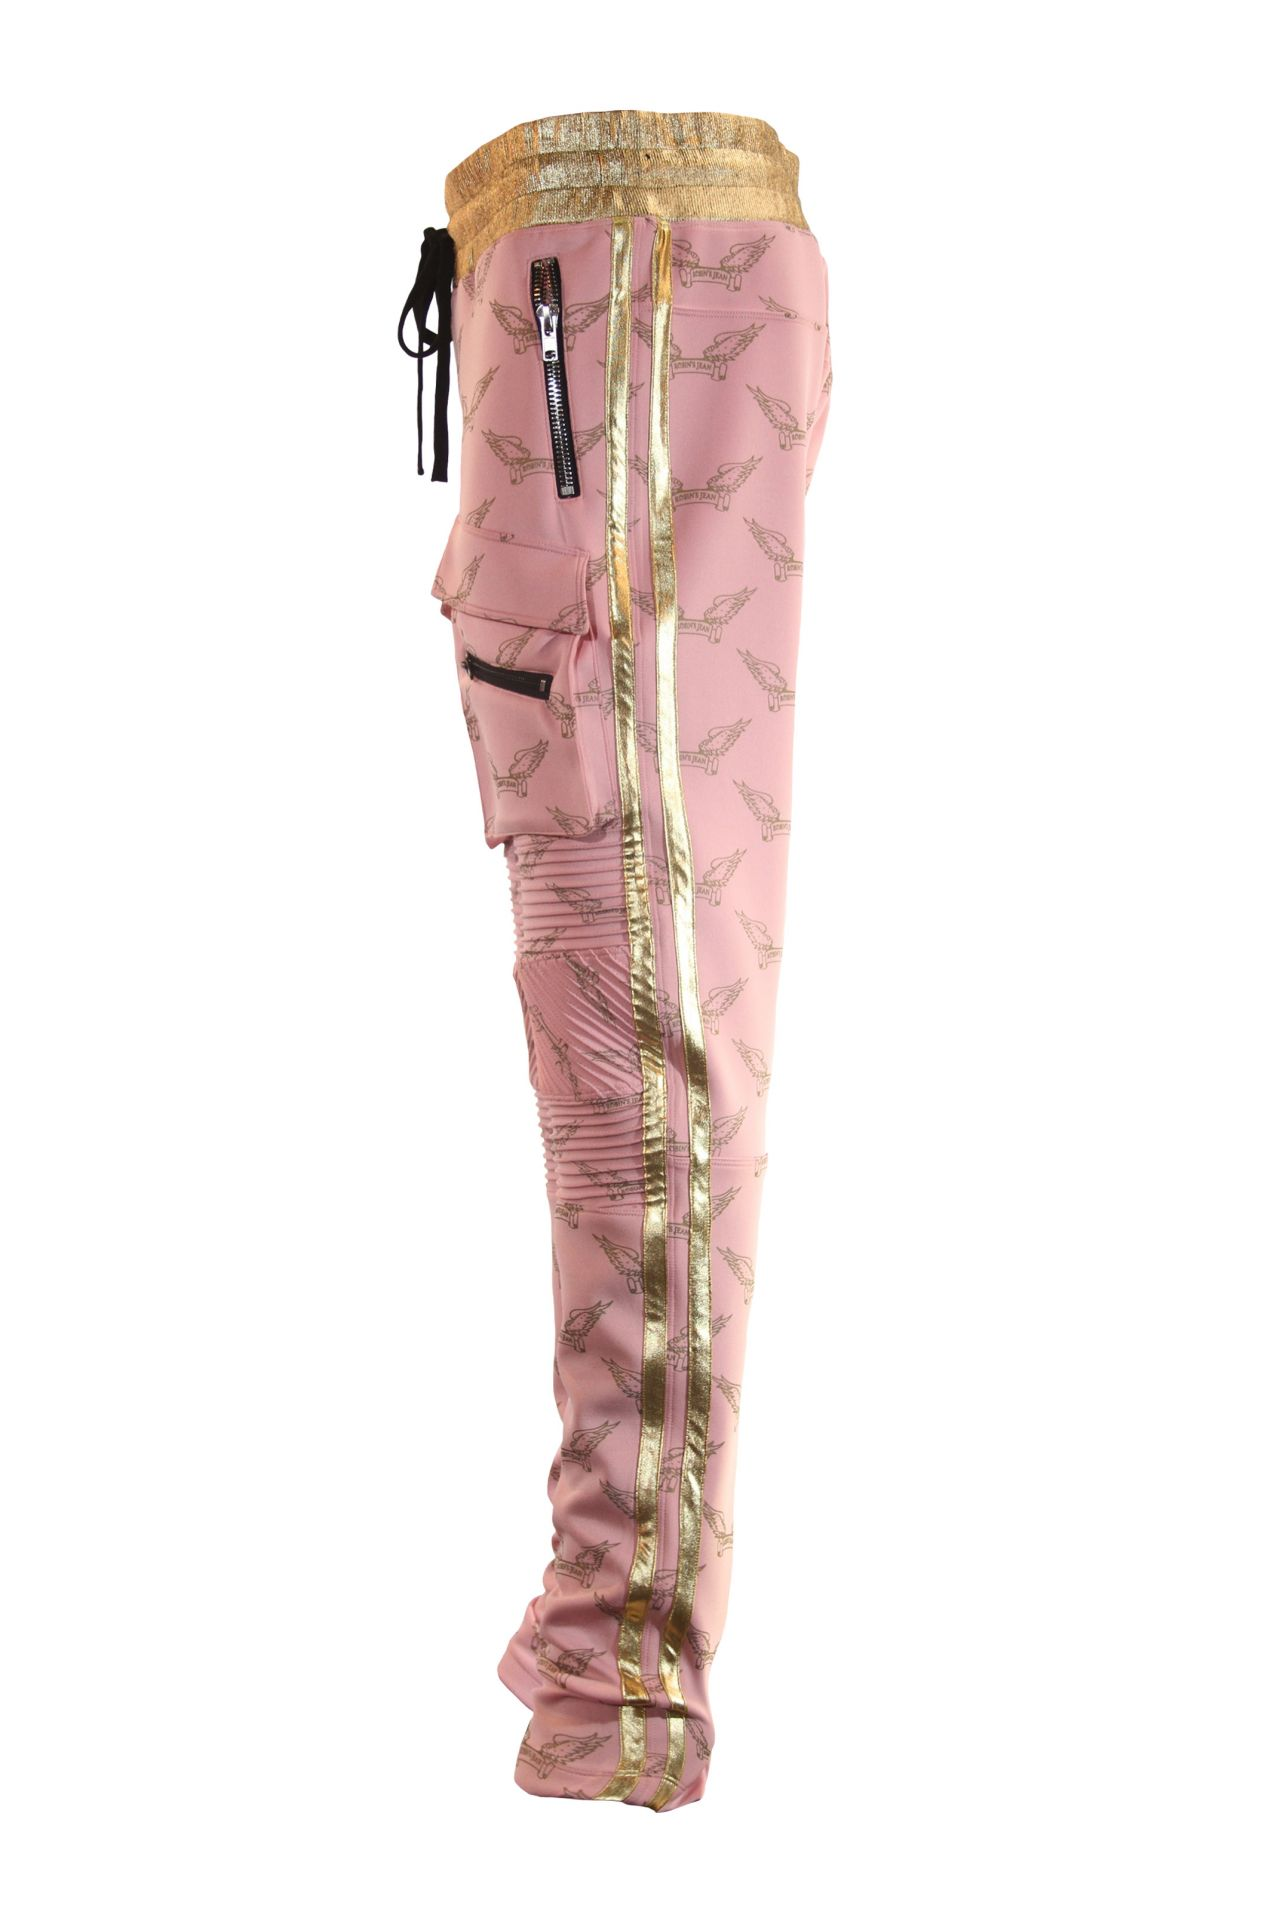 ROBIN'S MONOGRAM JOGGER IN PINK AND GOLD